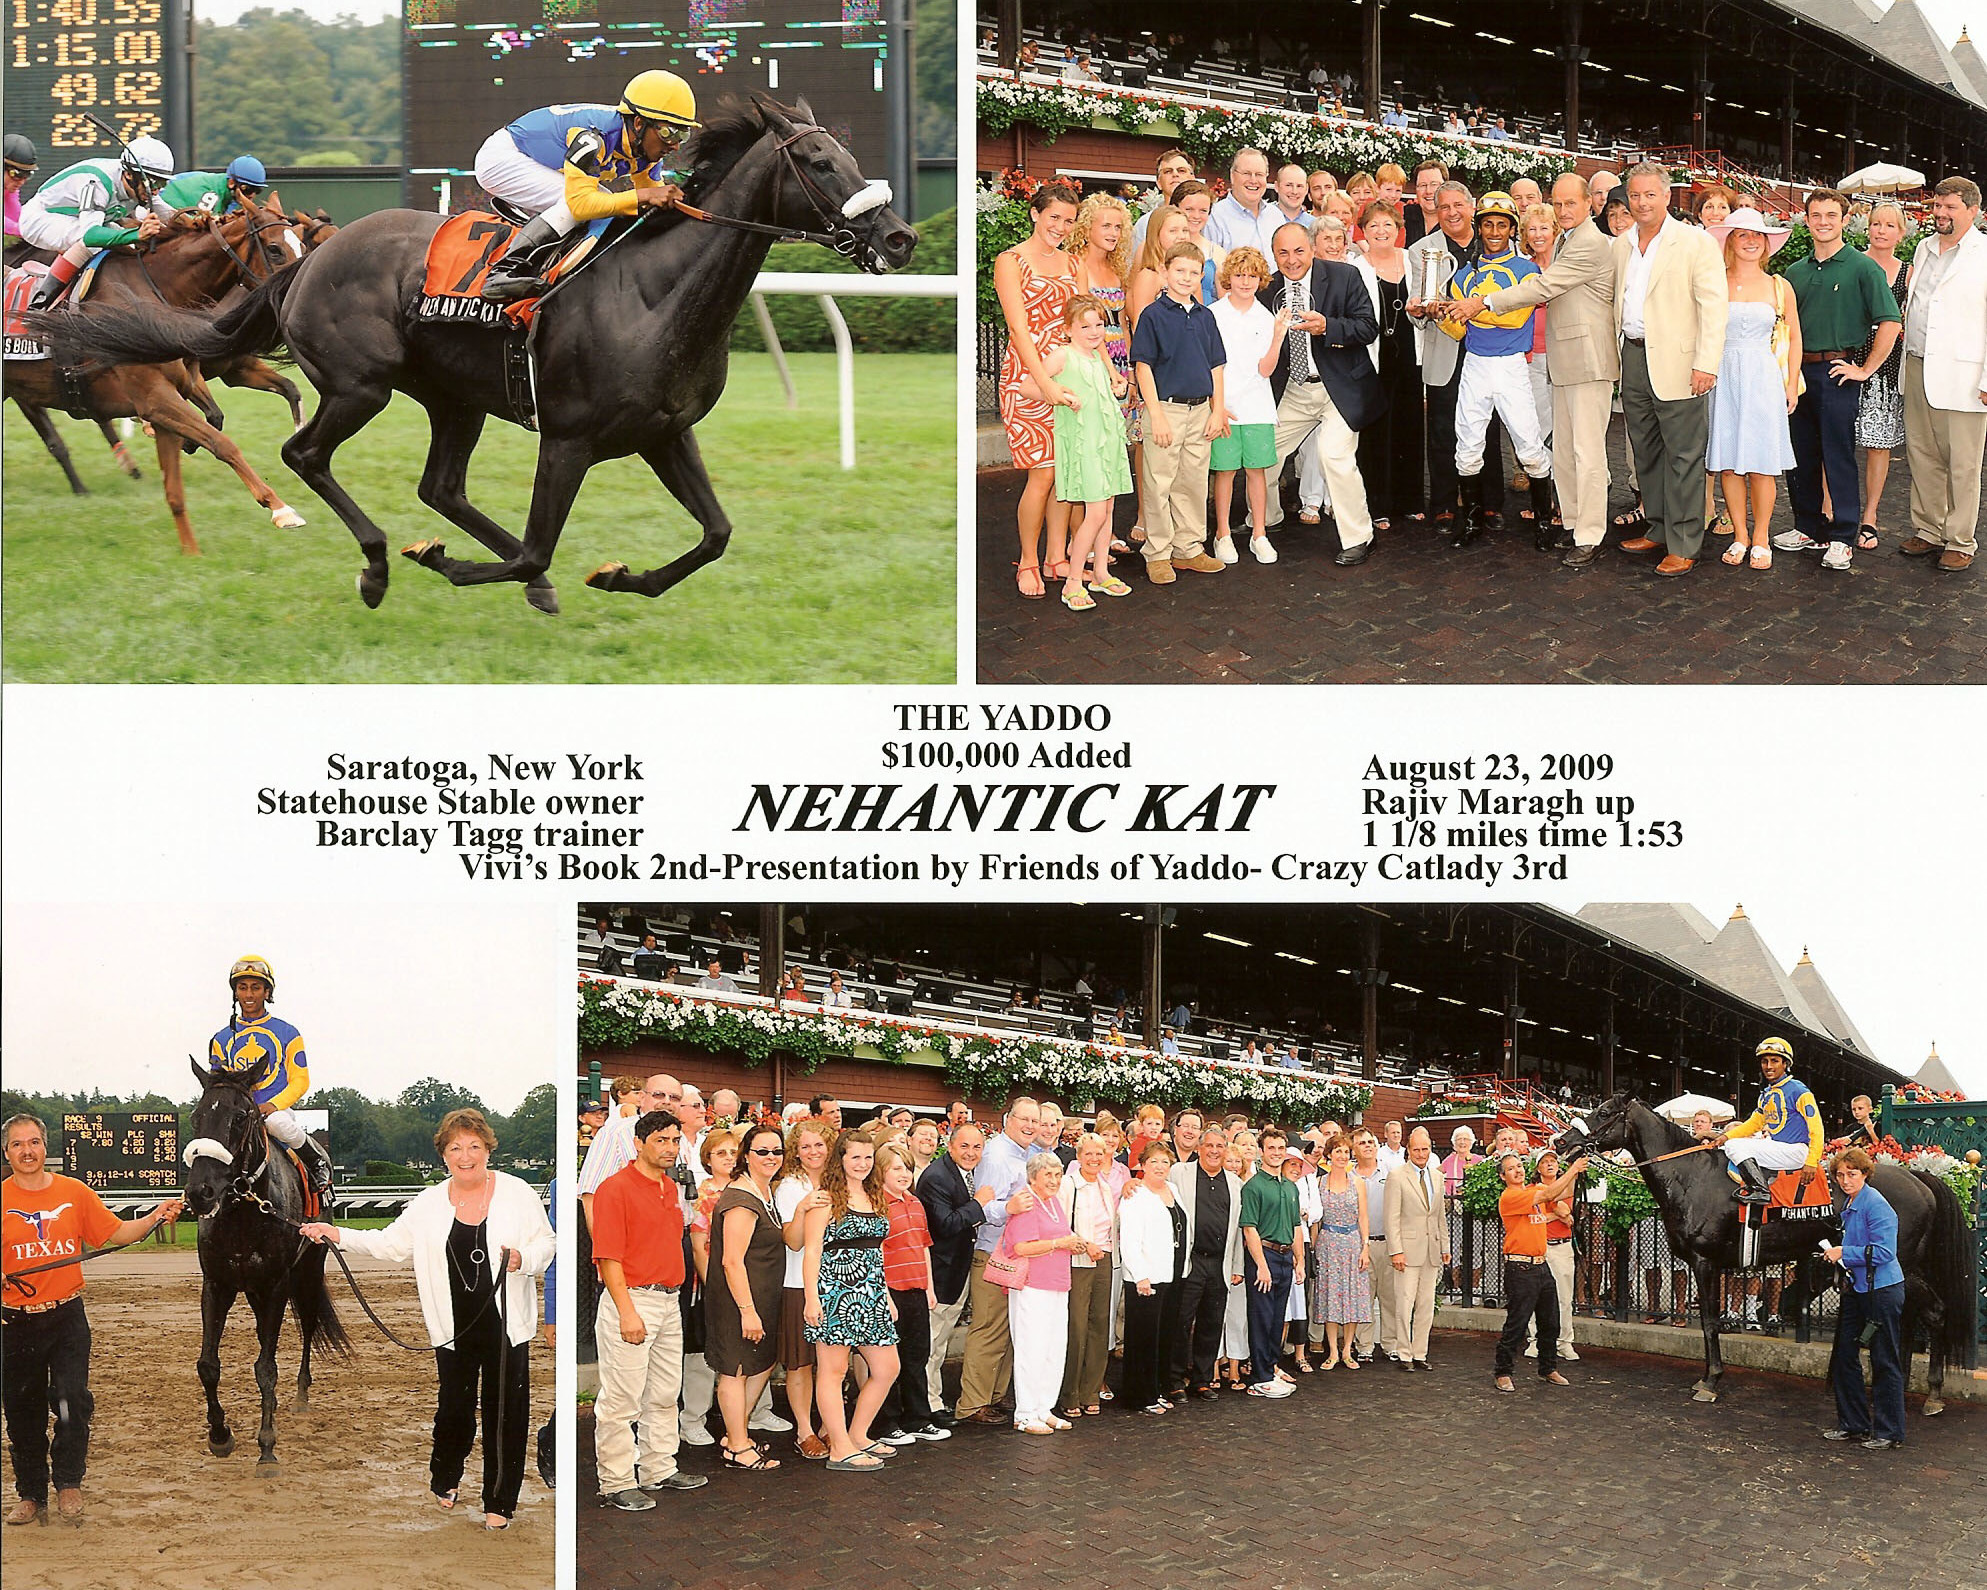 Nehantic Kat Win Yaddo August 23, 2009 Small NYRA.jpg